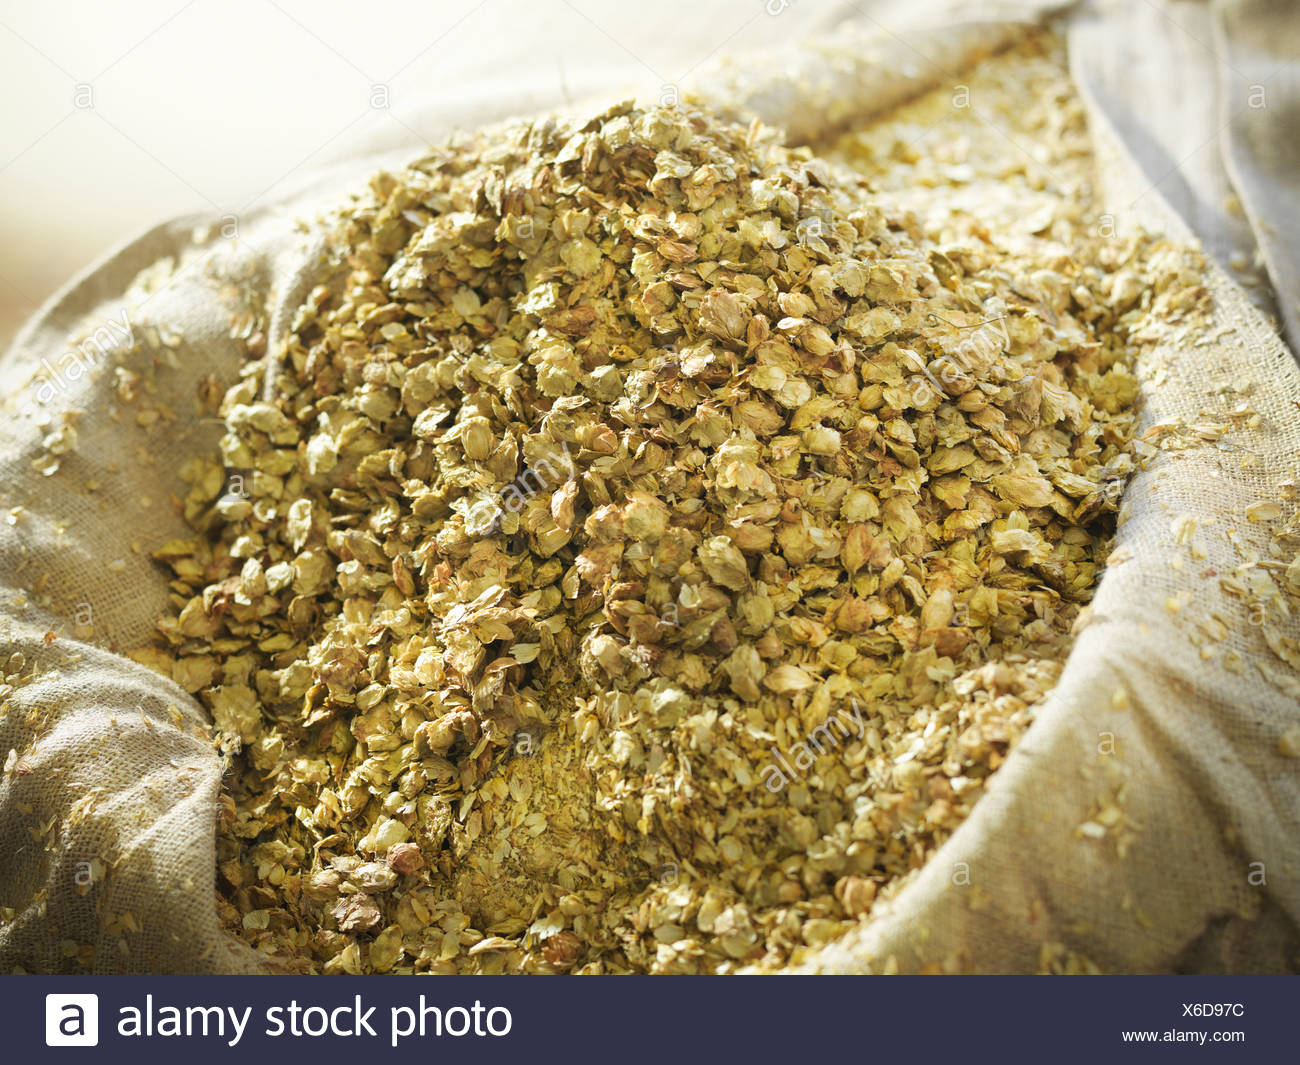 Sack of hops in brewery - Stock Image